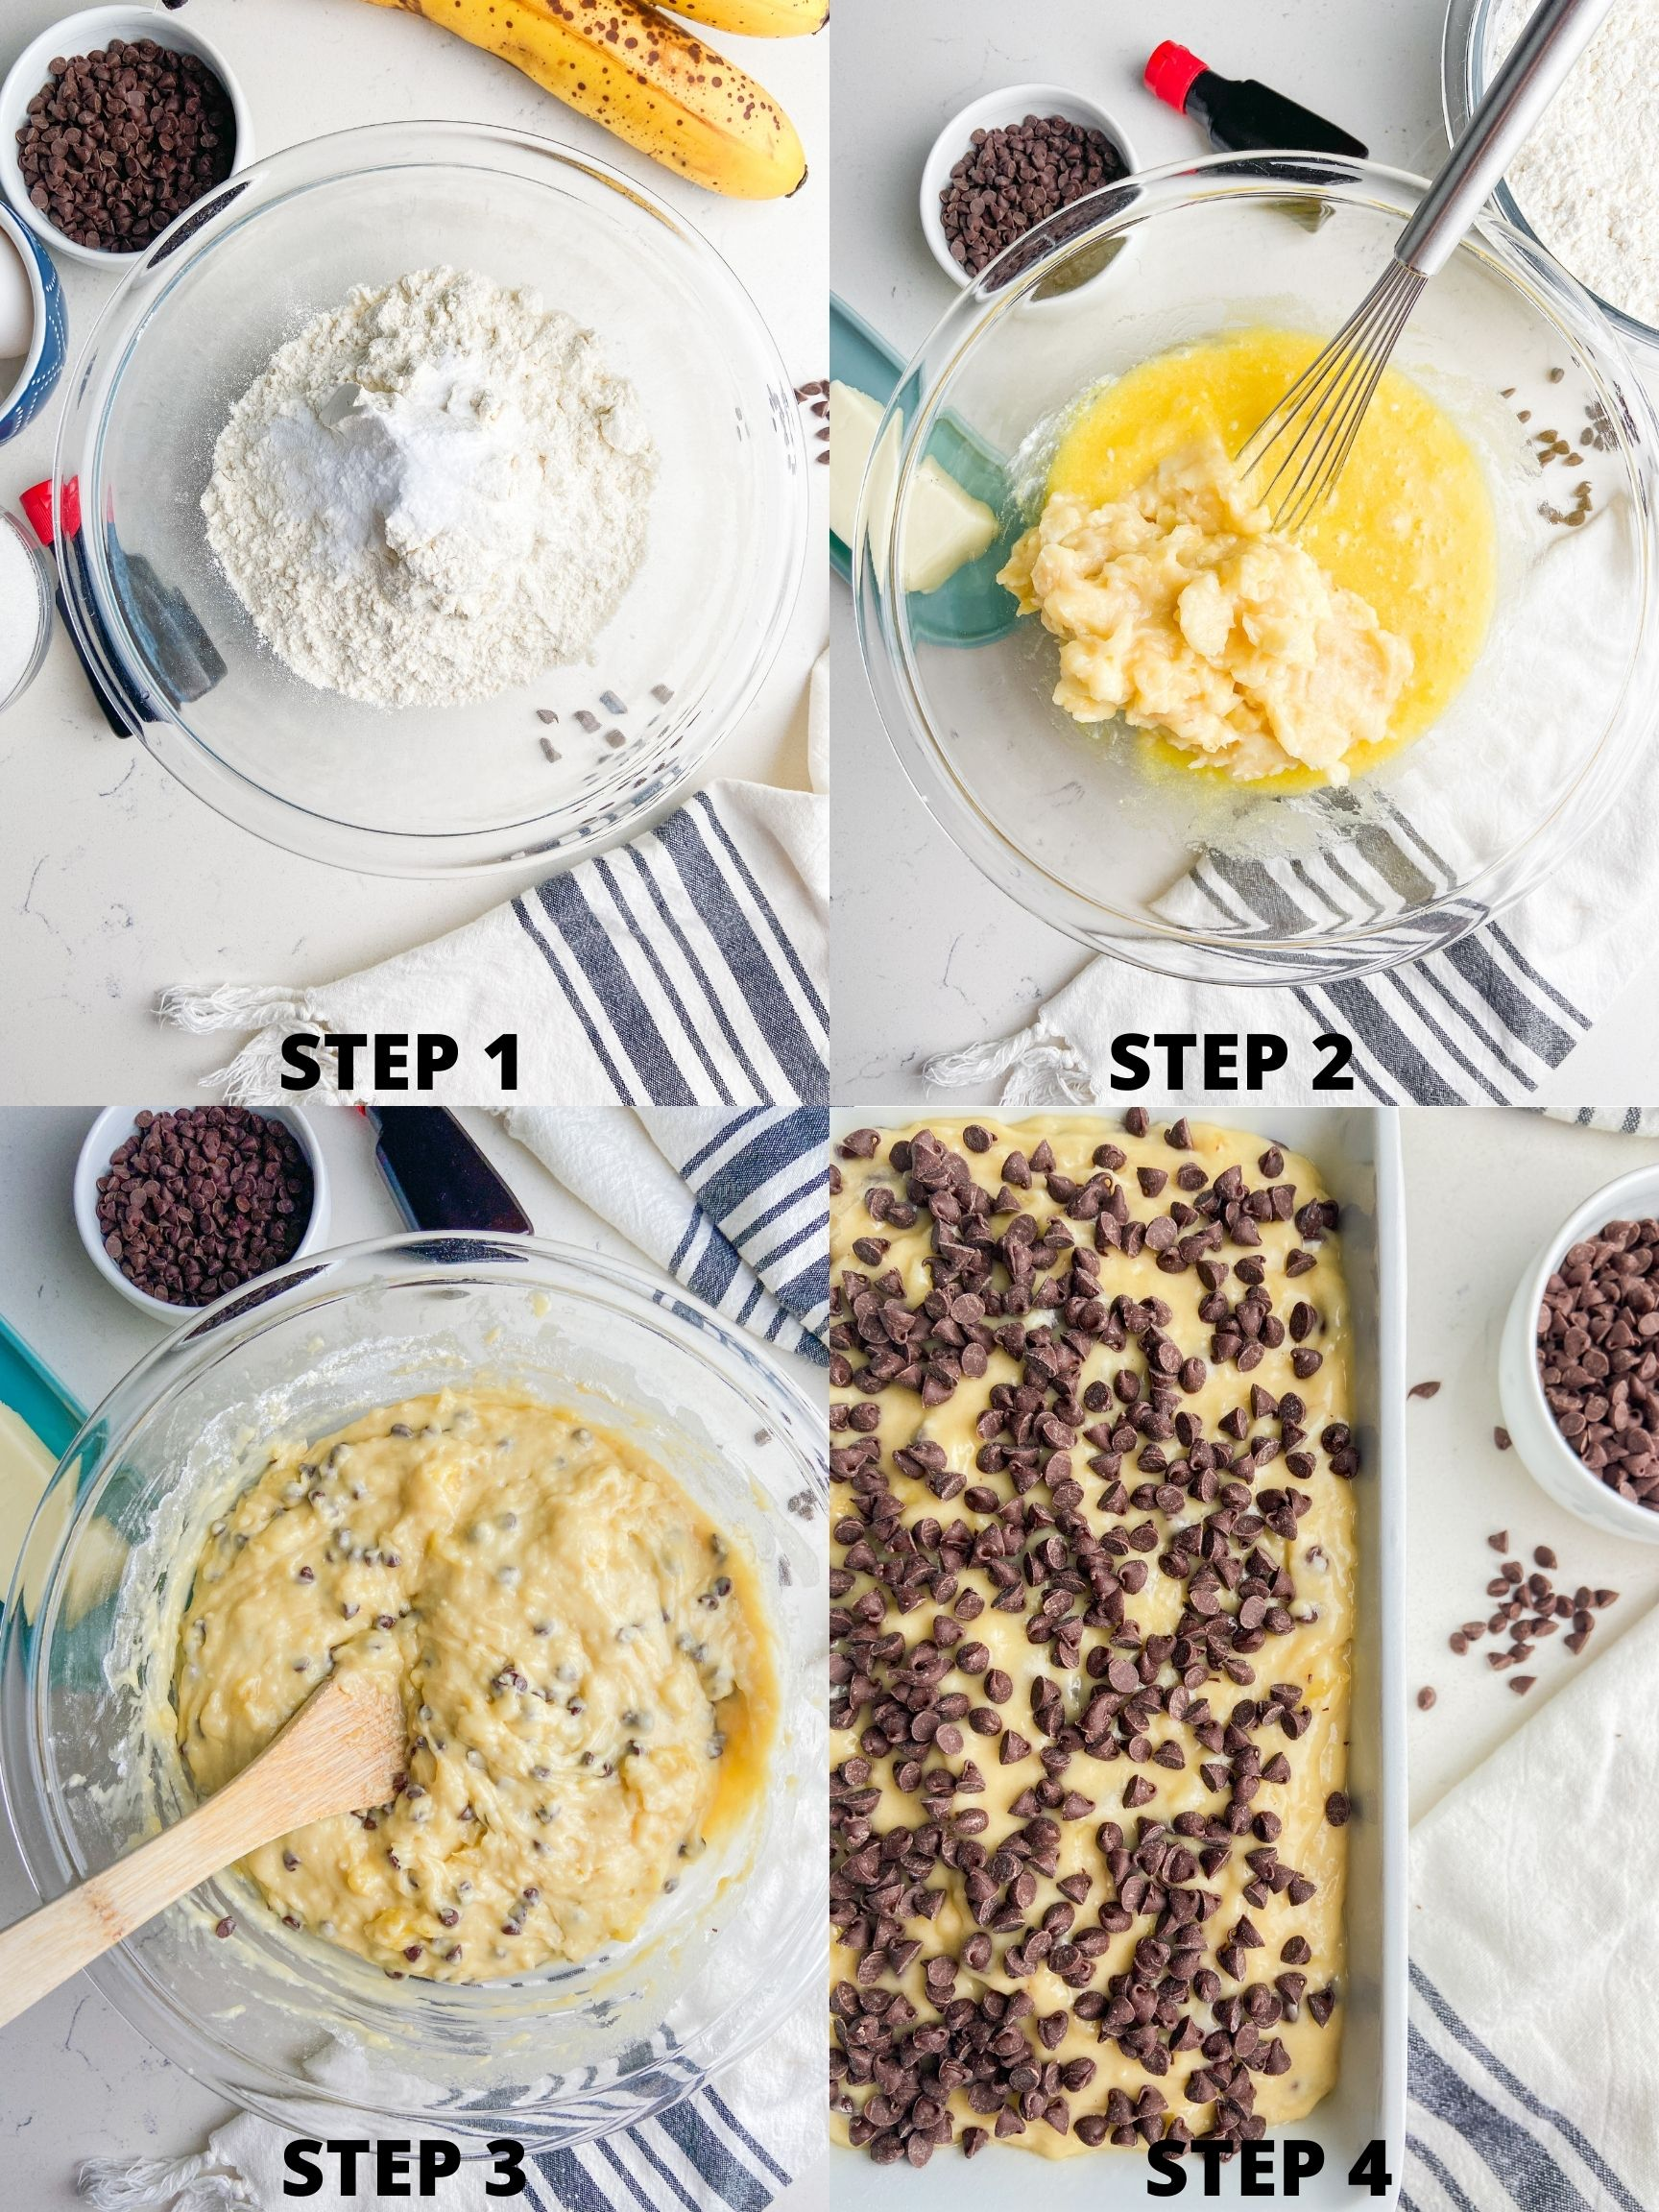 Step by step photos showing how to make chocolate banana bread.